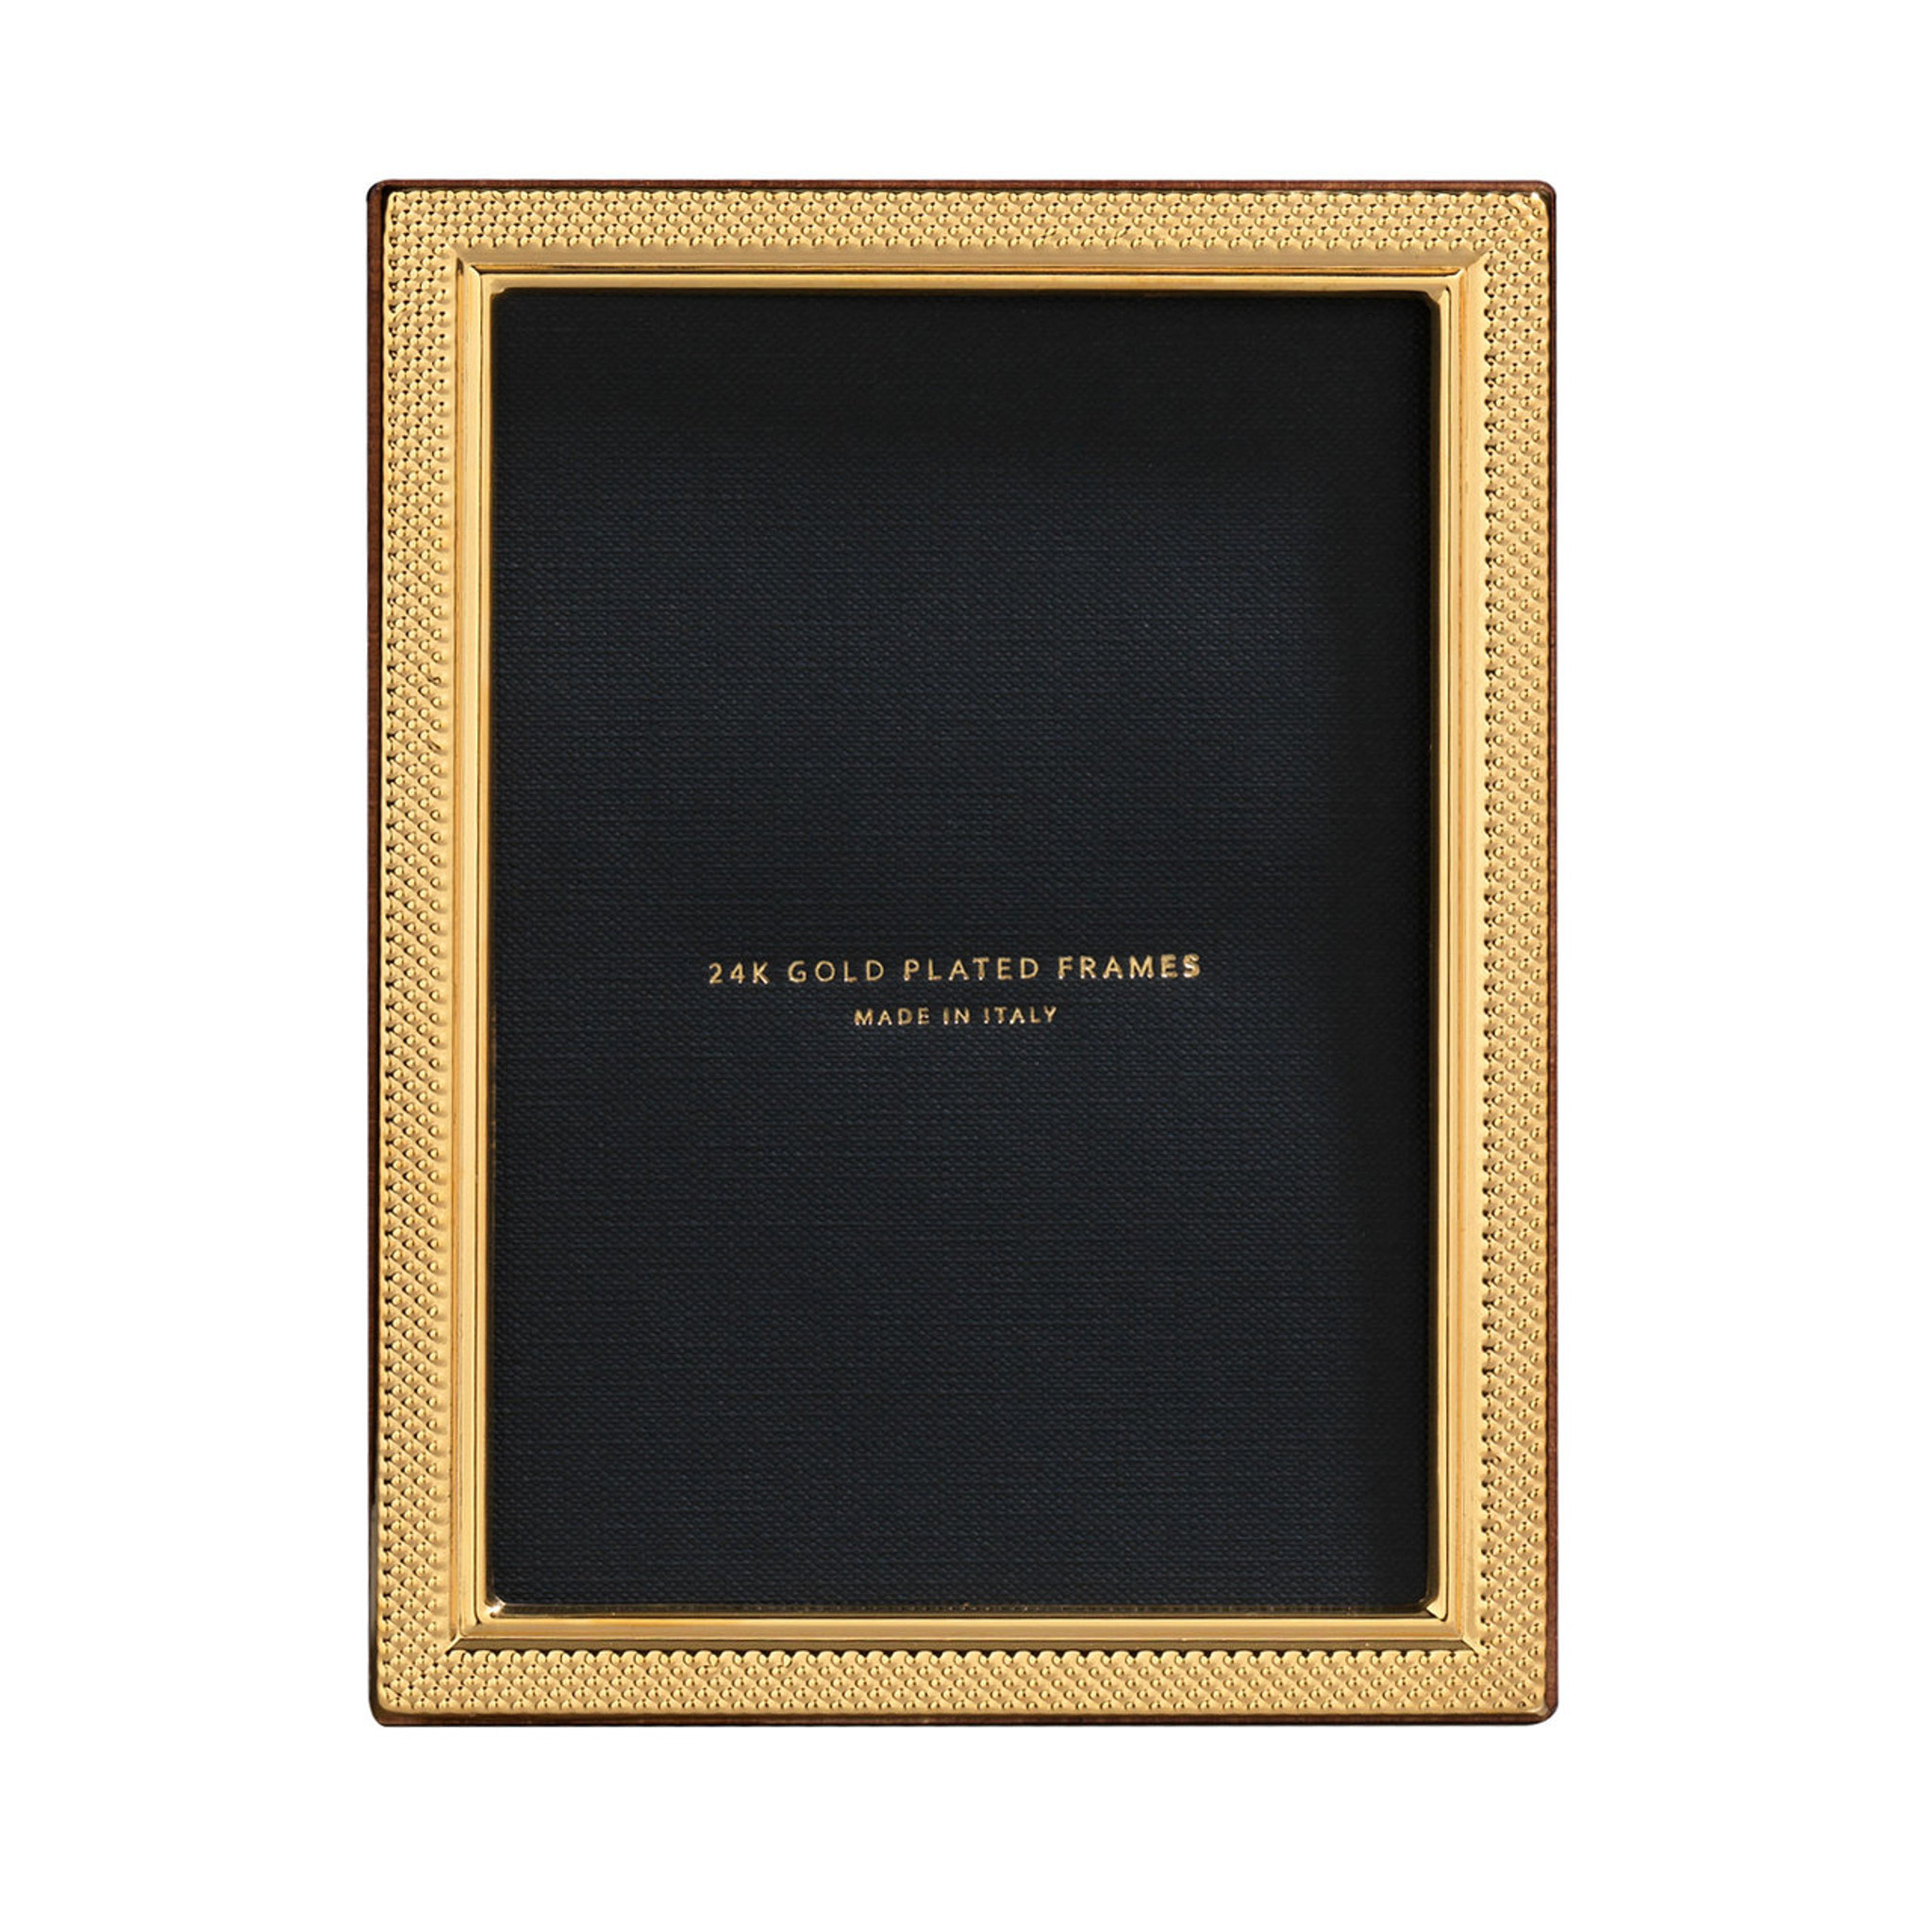 Cunill 24K Gold Plated Droplets 8X10 Picture Frame